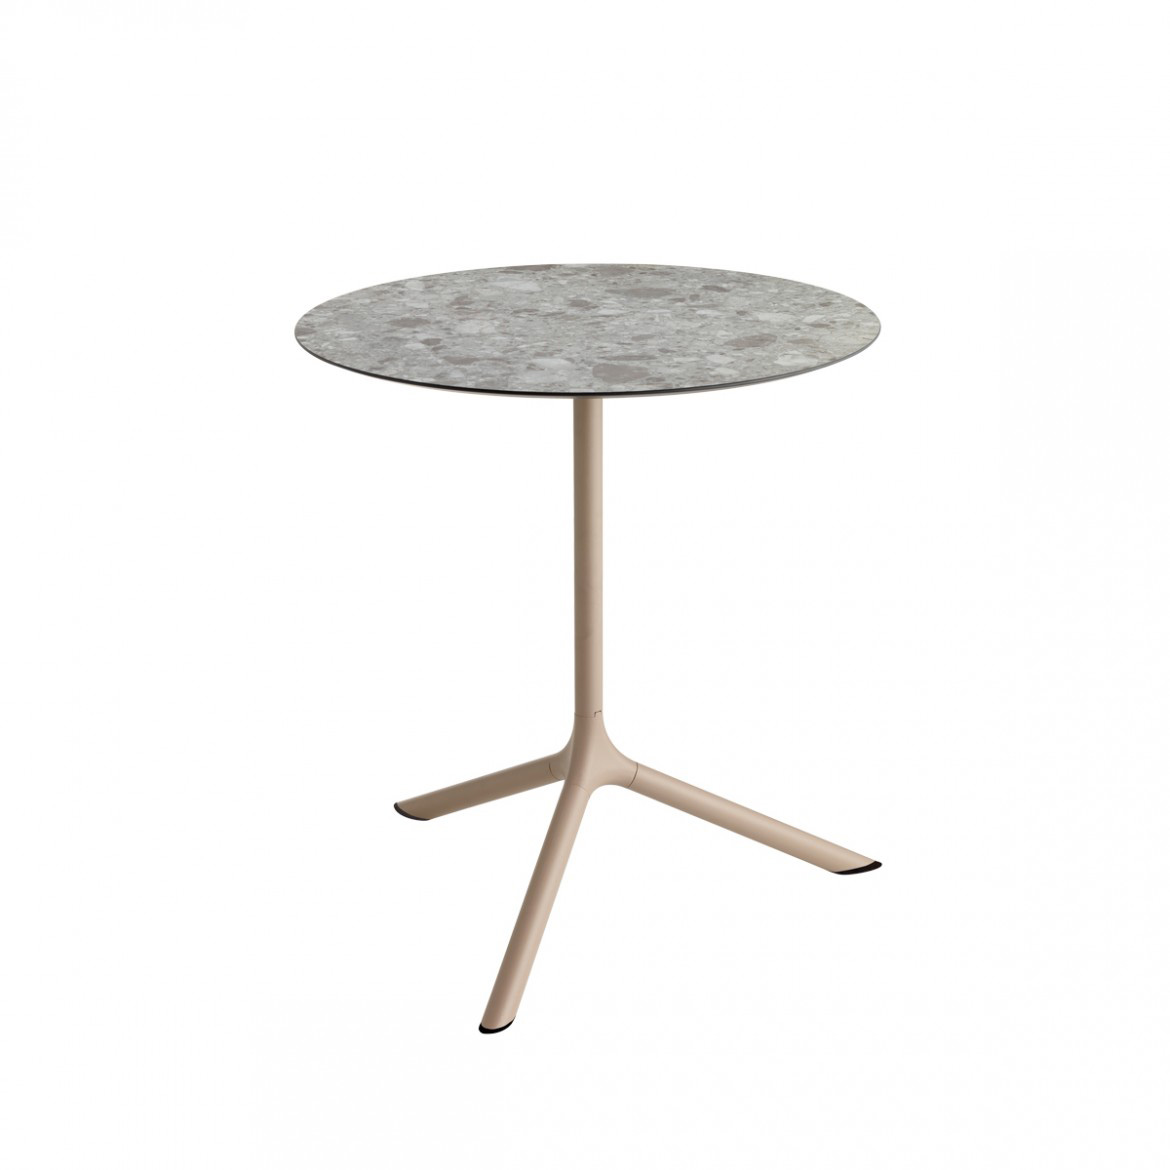 Trippé 605 table